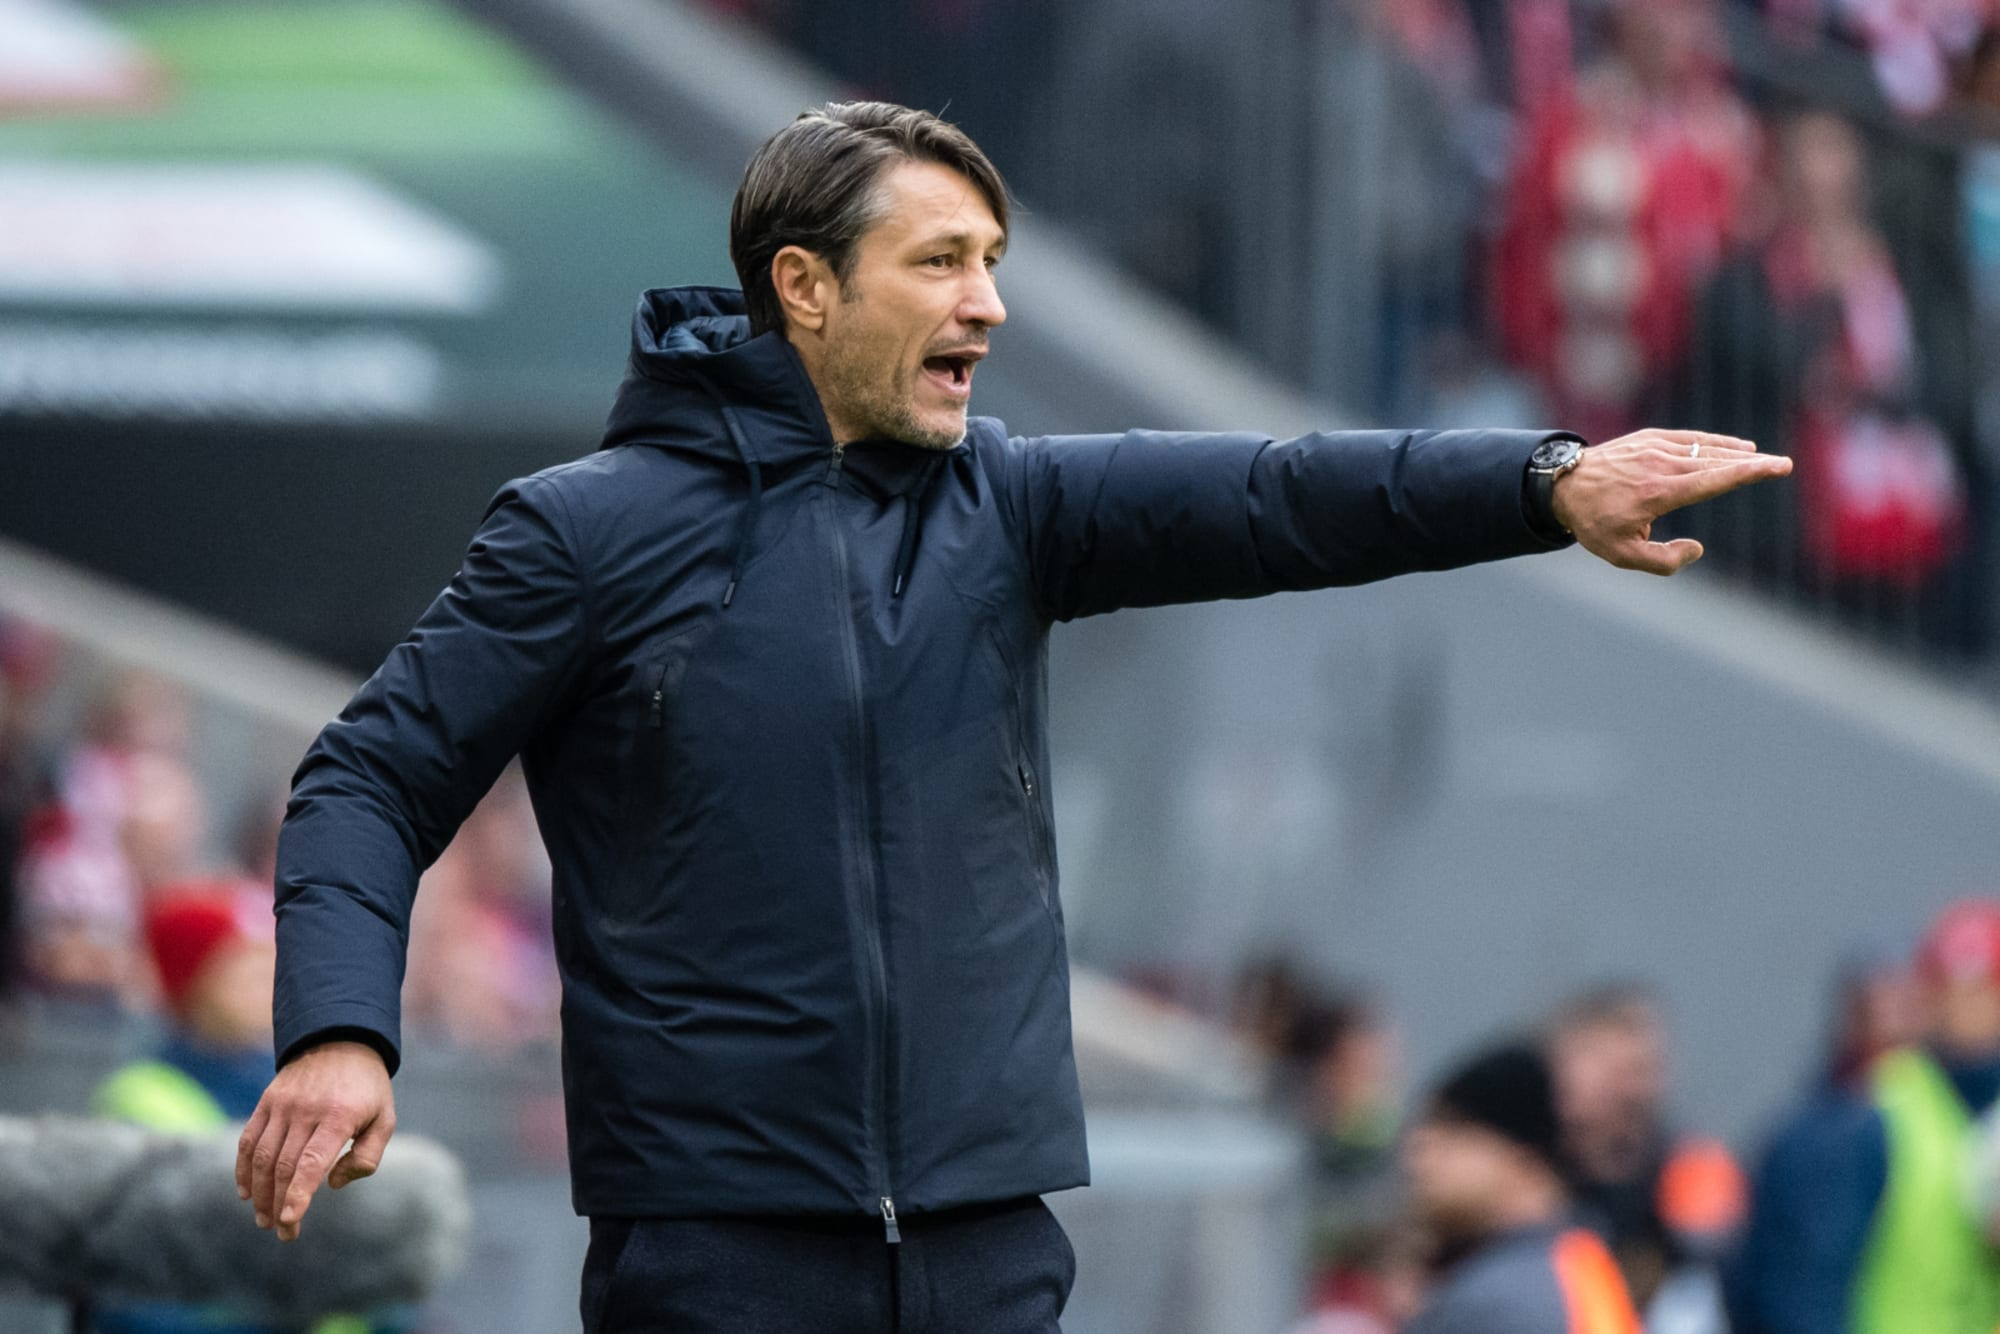 Niko Kovac discusses tough situations at Bayern Munich